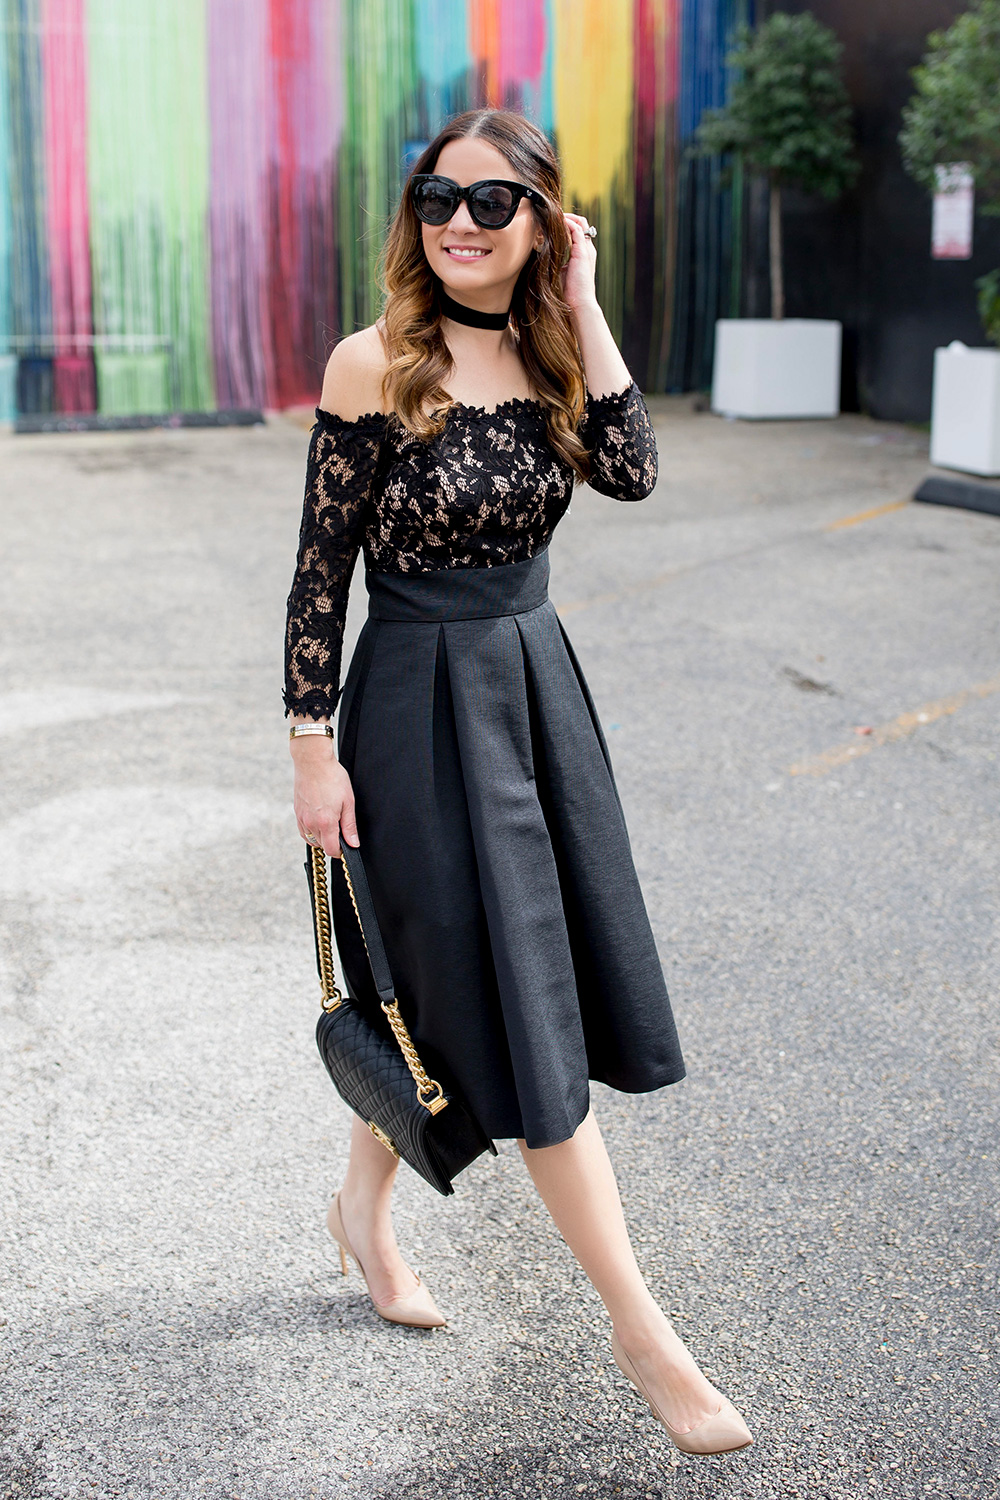 Black Lace Strapless Flare Dress